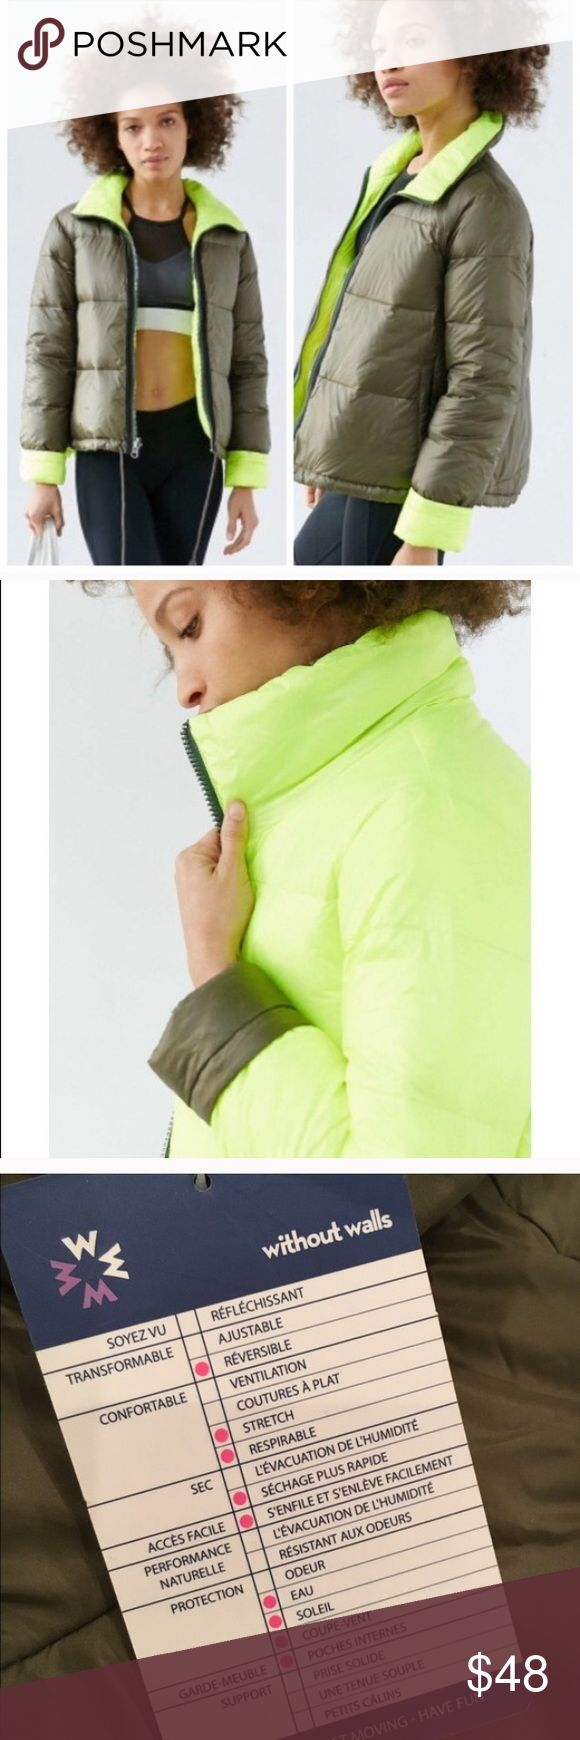 """Free People without walls down align jacket Reversible Without Walls Aline Down Jacket in Moss/Yellow, new with tags. From UO, """"Brave the elements in this this uber-insulated quilted puffer jacket with a reversible solid outer from better-than-basic active wear label Without Walls. adjustable draw chord cinch waist, hand warmer pockets + cozy high collar to protect ya' neck. There are some spots on the front. I'm not sure what it is but will probably come out. Content + Care - Nylon, down…"""